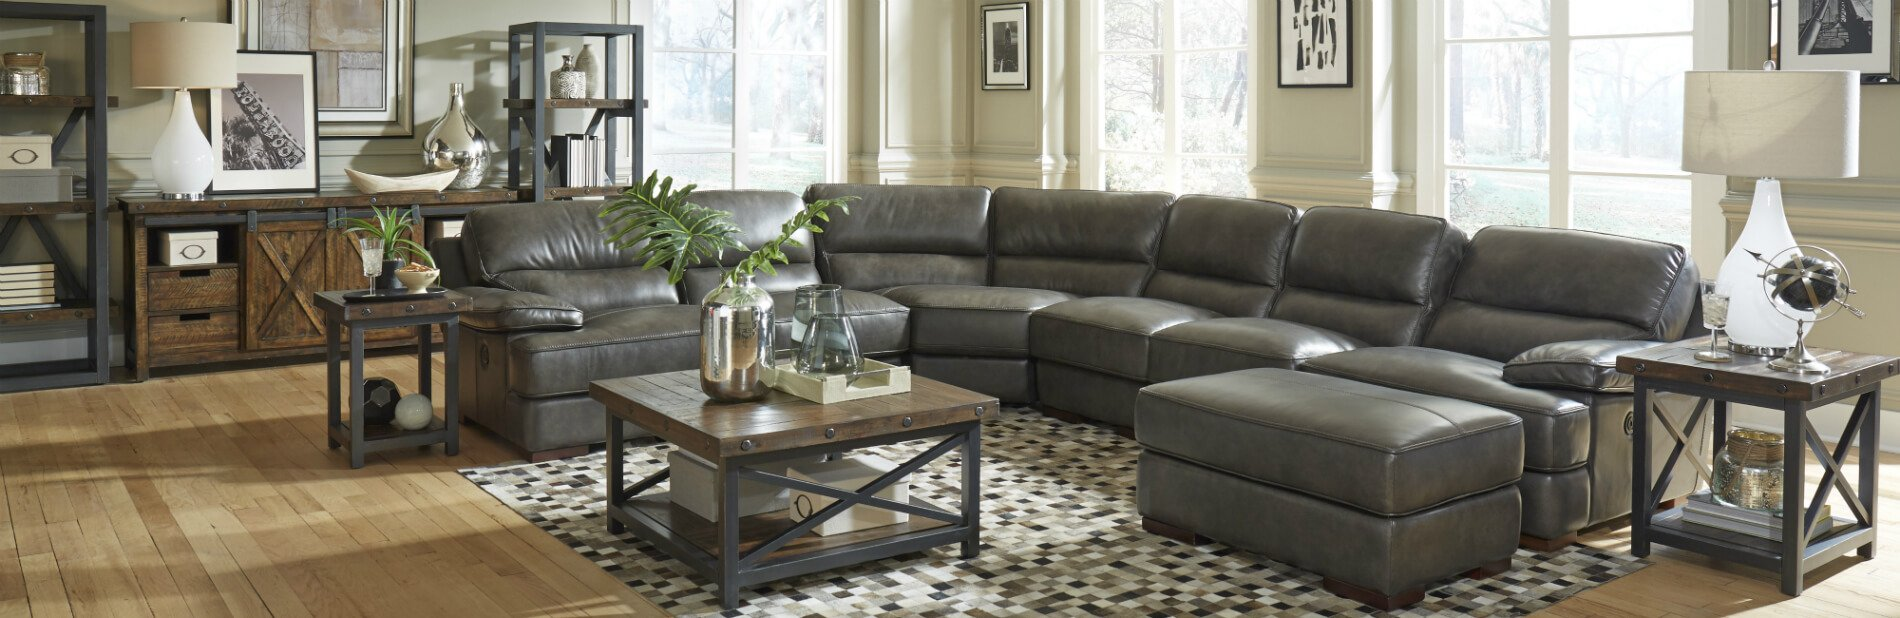 Jade Sectional Leather Furniture